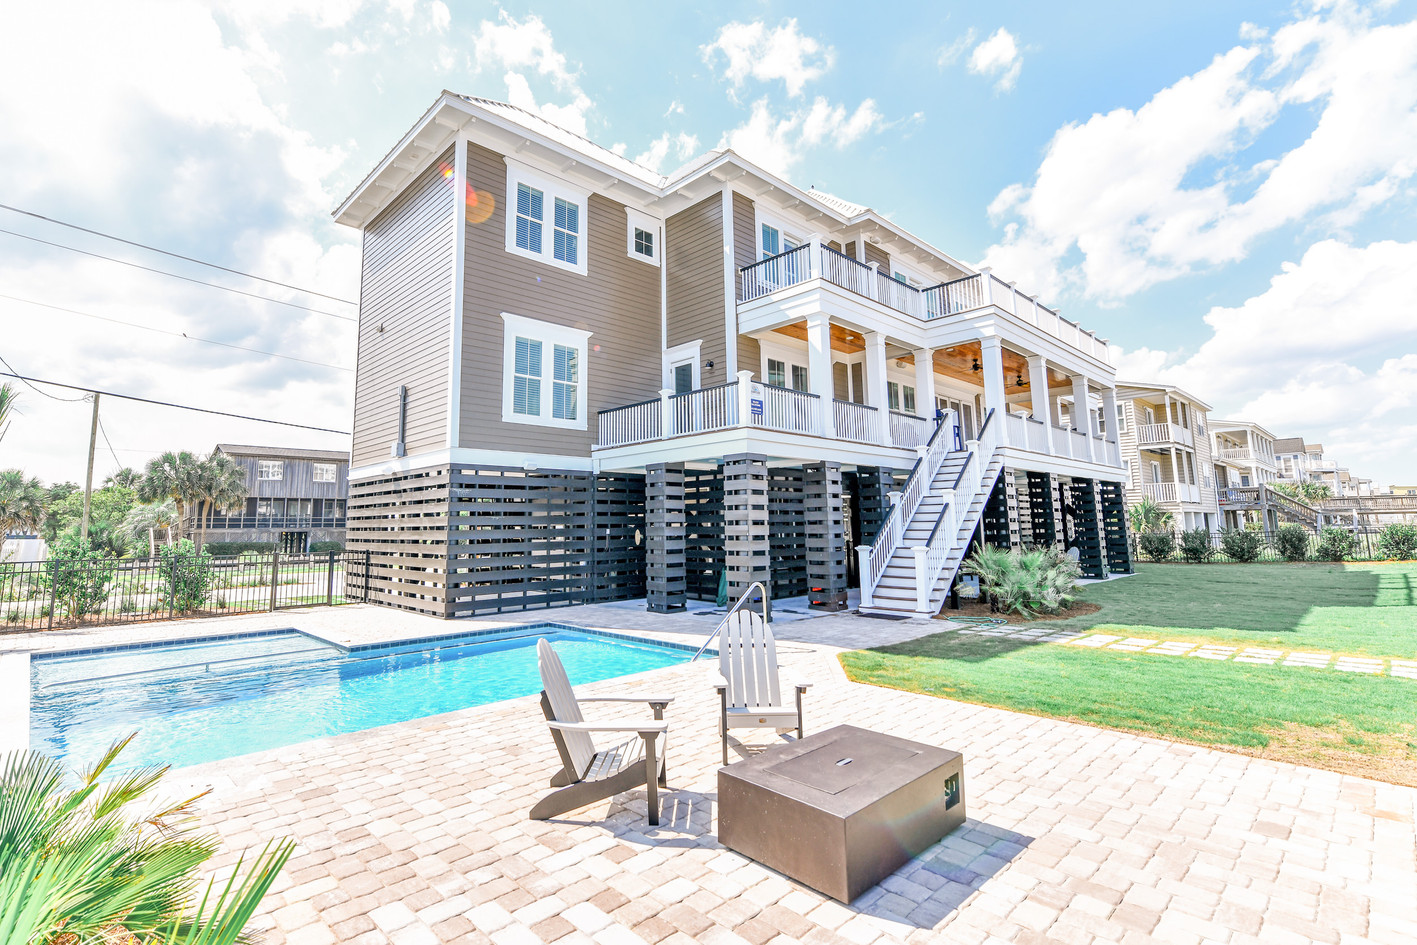 MYRTLE-BEACH-REAL-ESTATE-PHOTOGRAPHERS-5